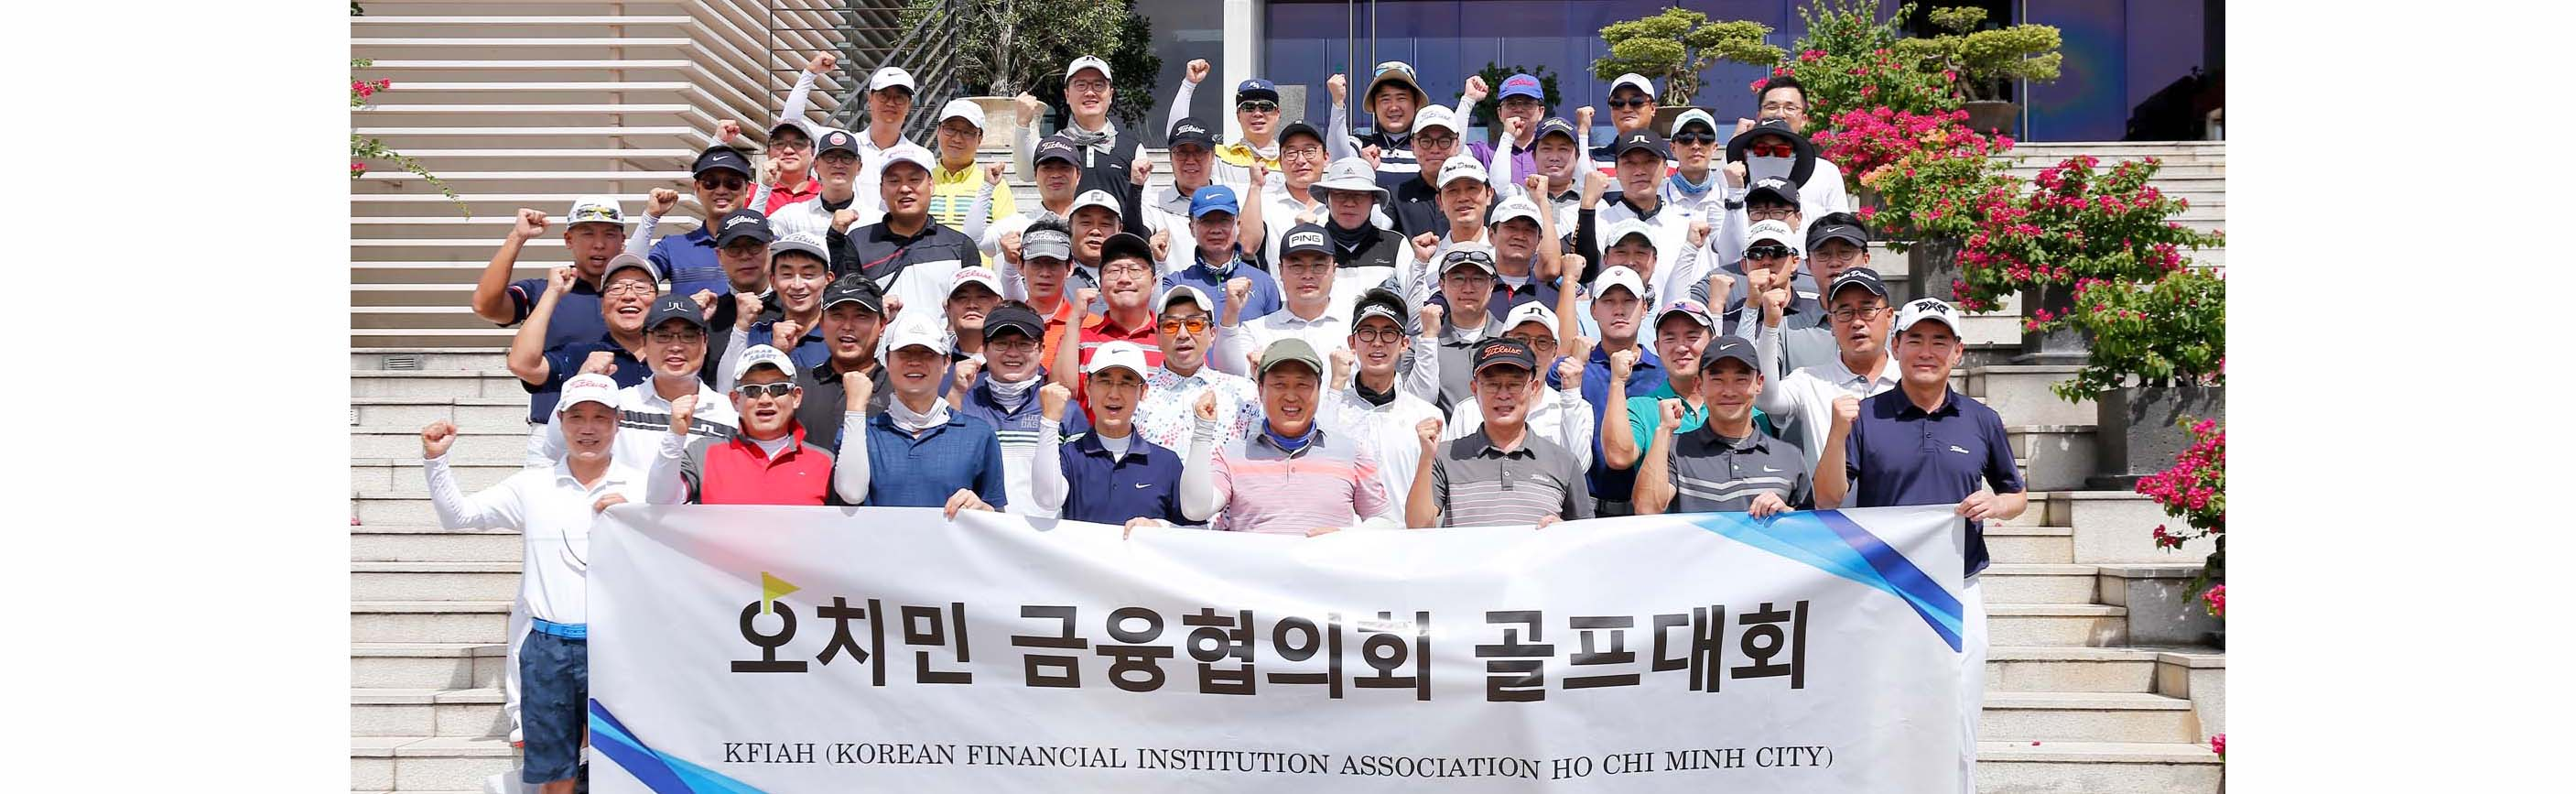 THE KOREA FINANCIAL ASSOCIATION IN HCMC on 28th Nov 2020